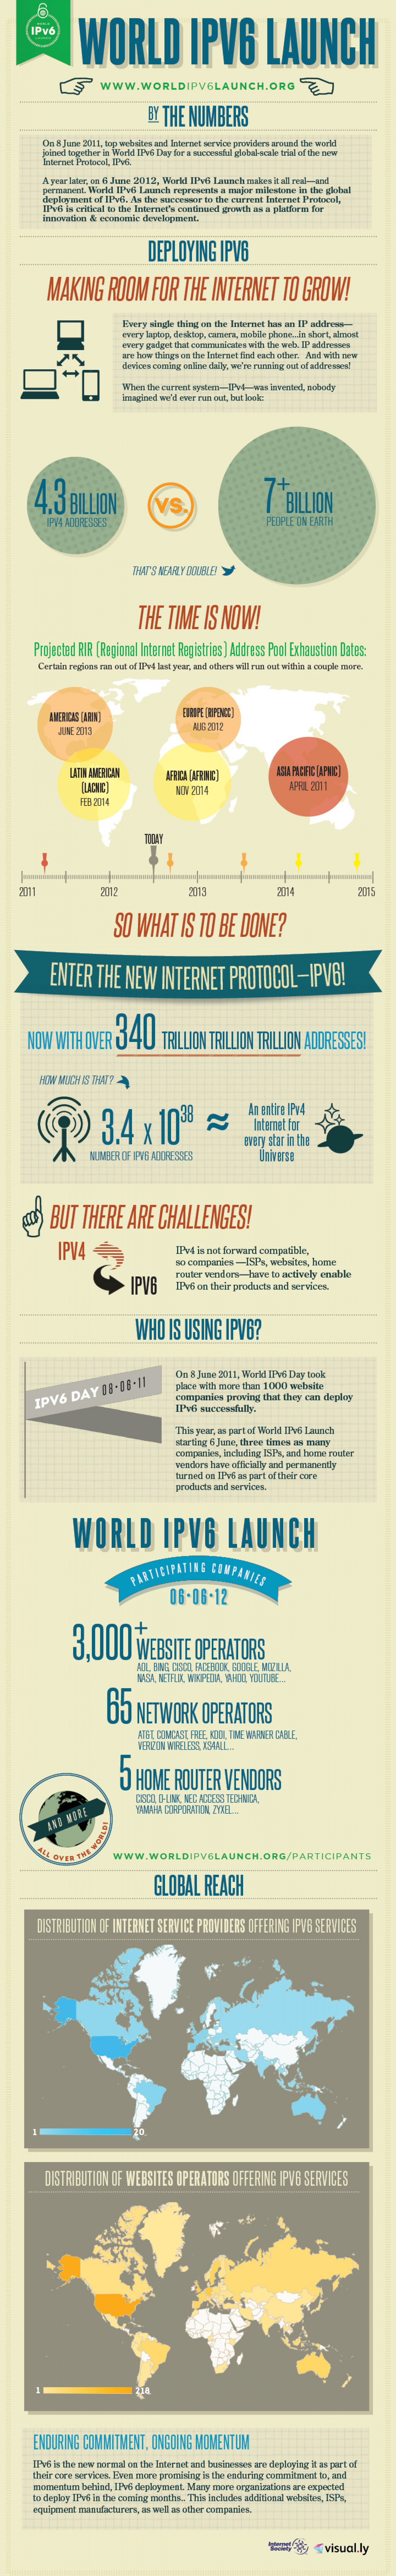 World IPv6 Launch By the Numbers Infographic